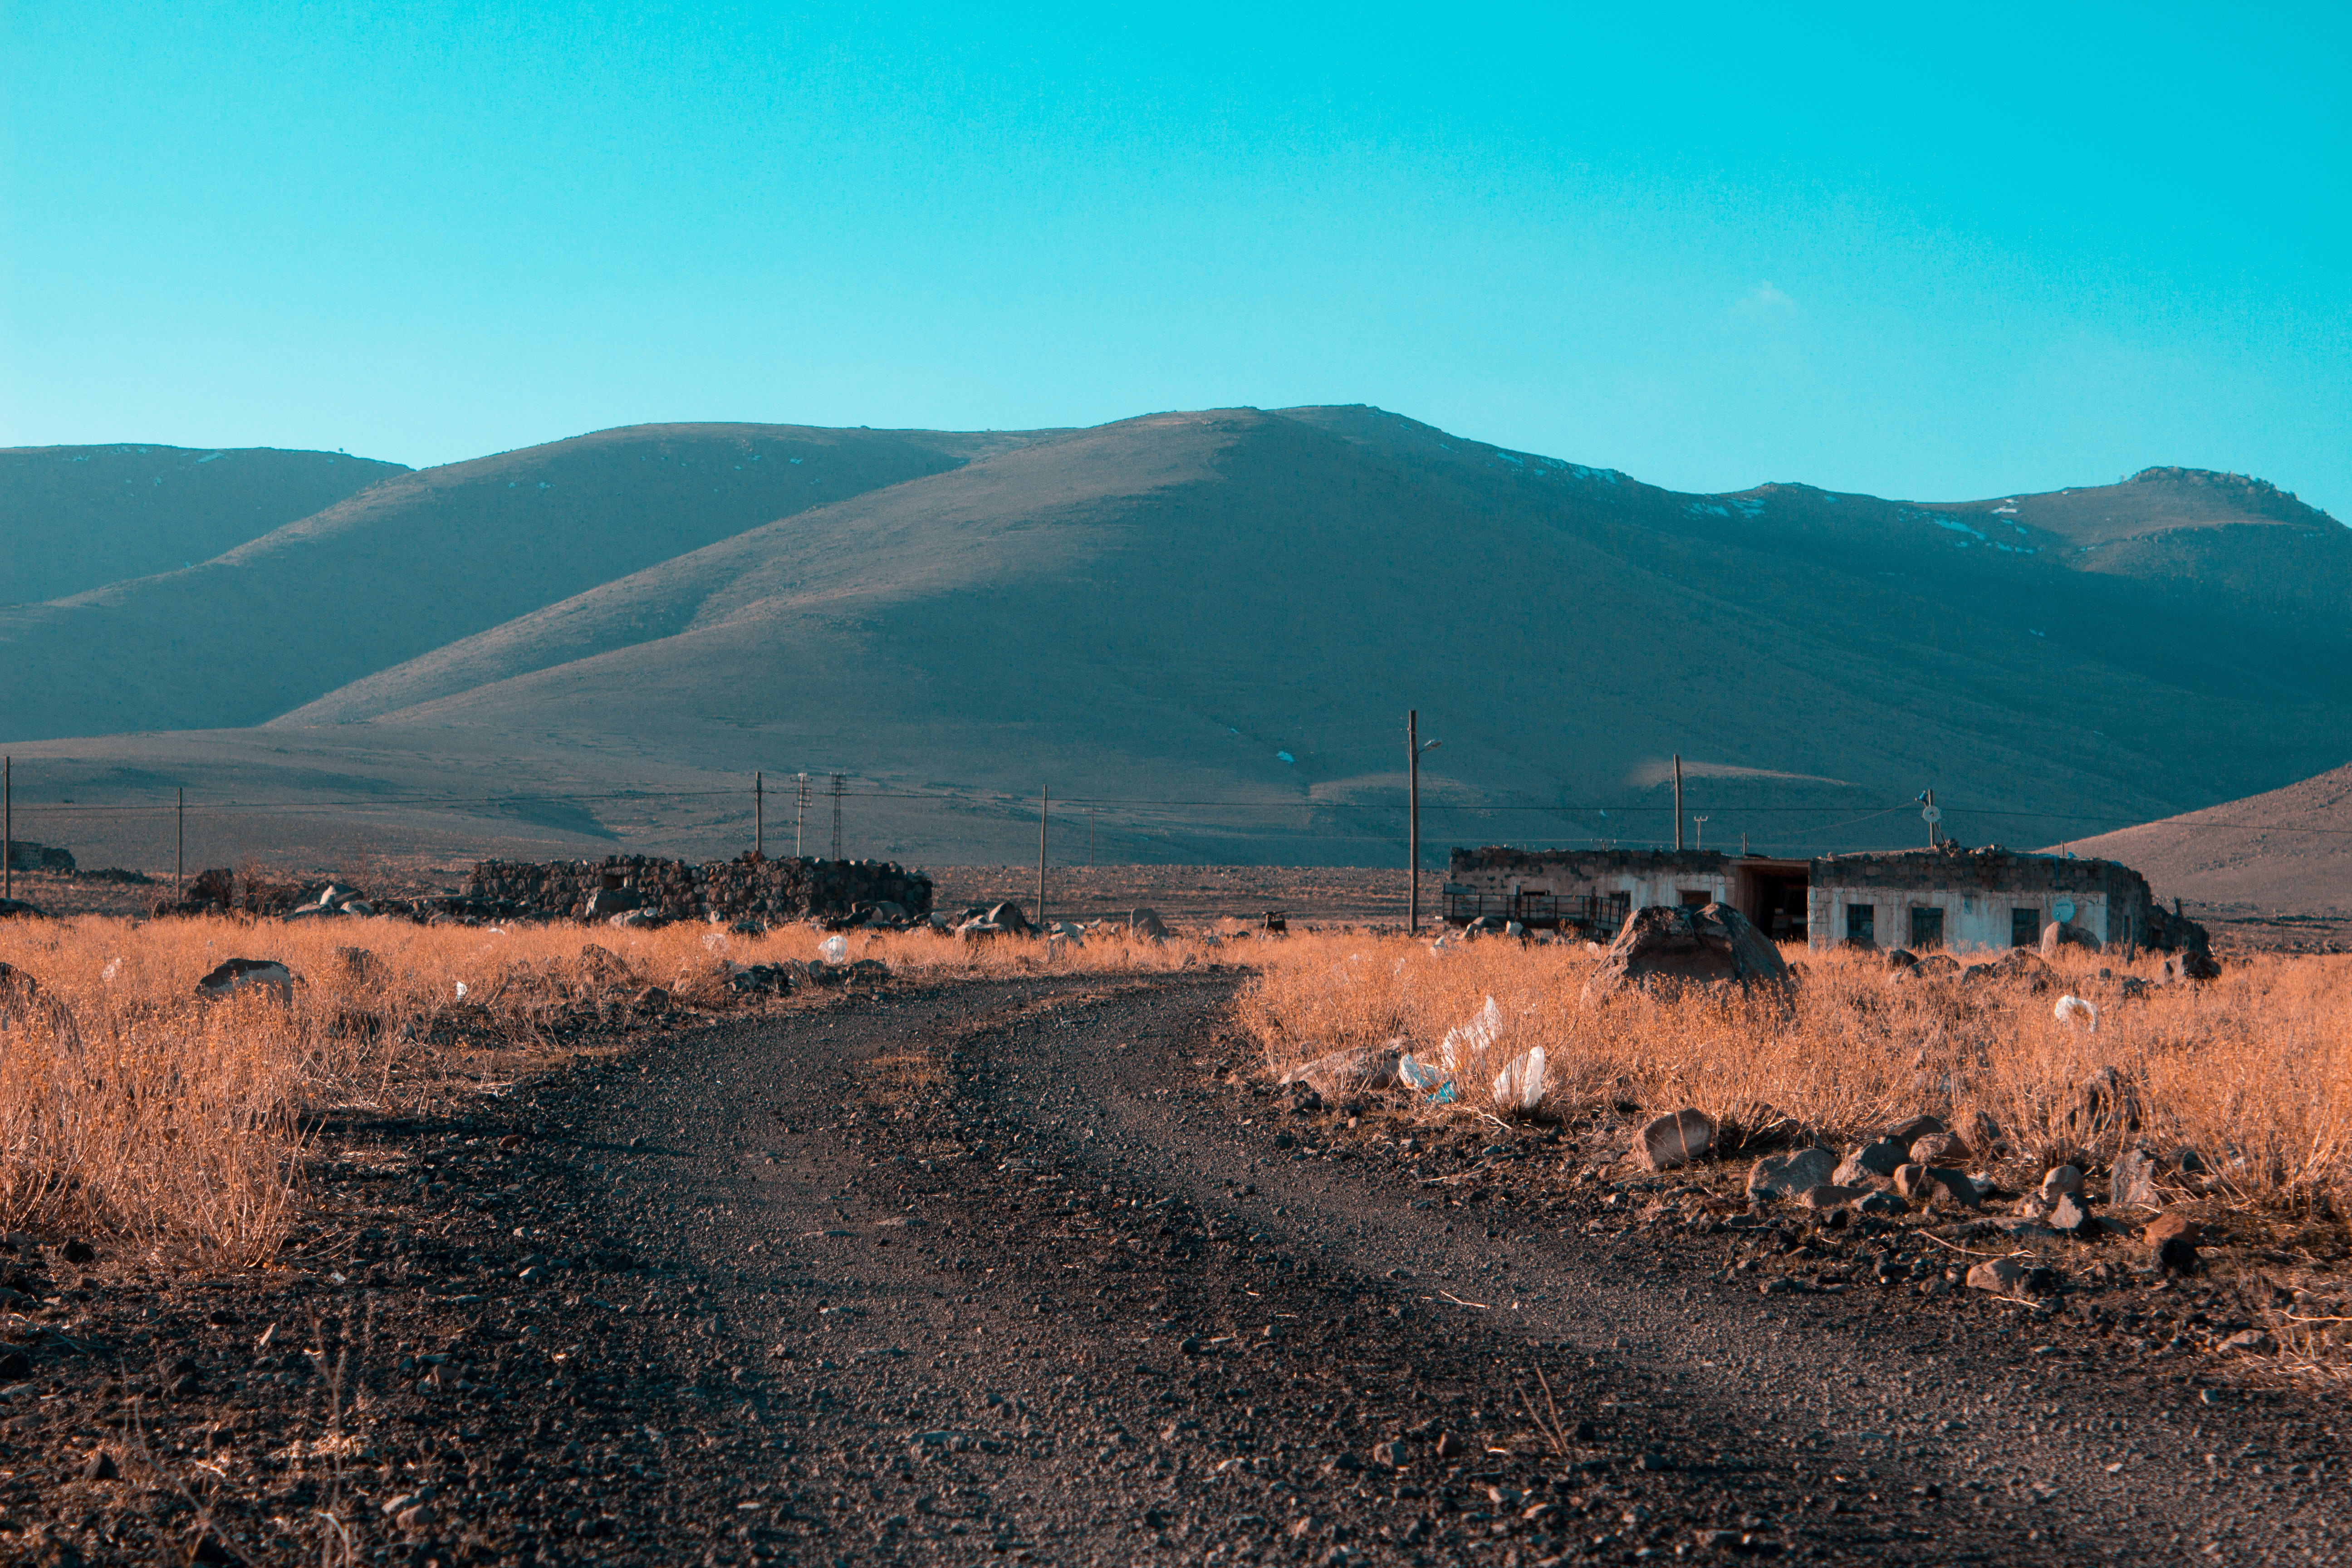 Gray road in between brown grass field with mountains background photo